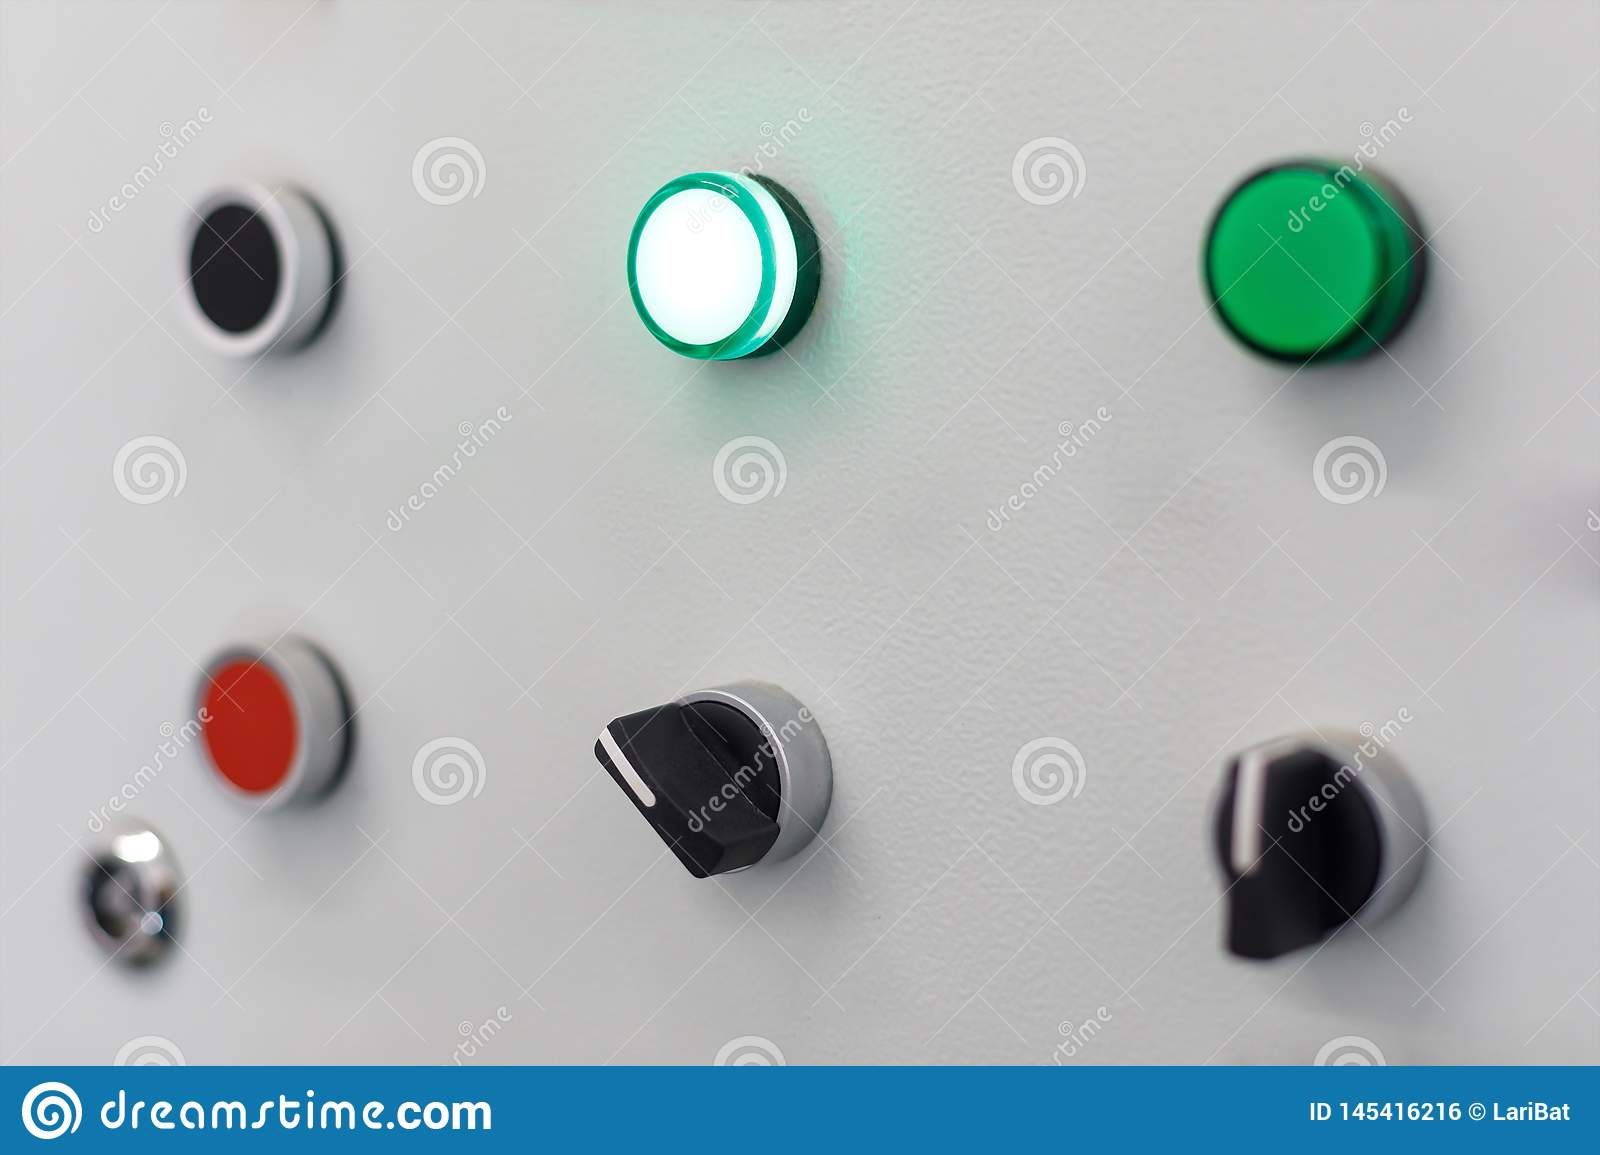 Gray panel with red and a few green buttons and black switches